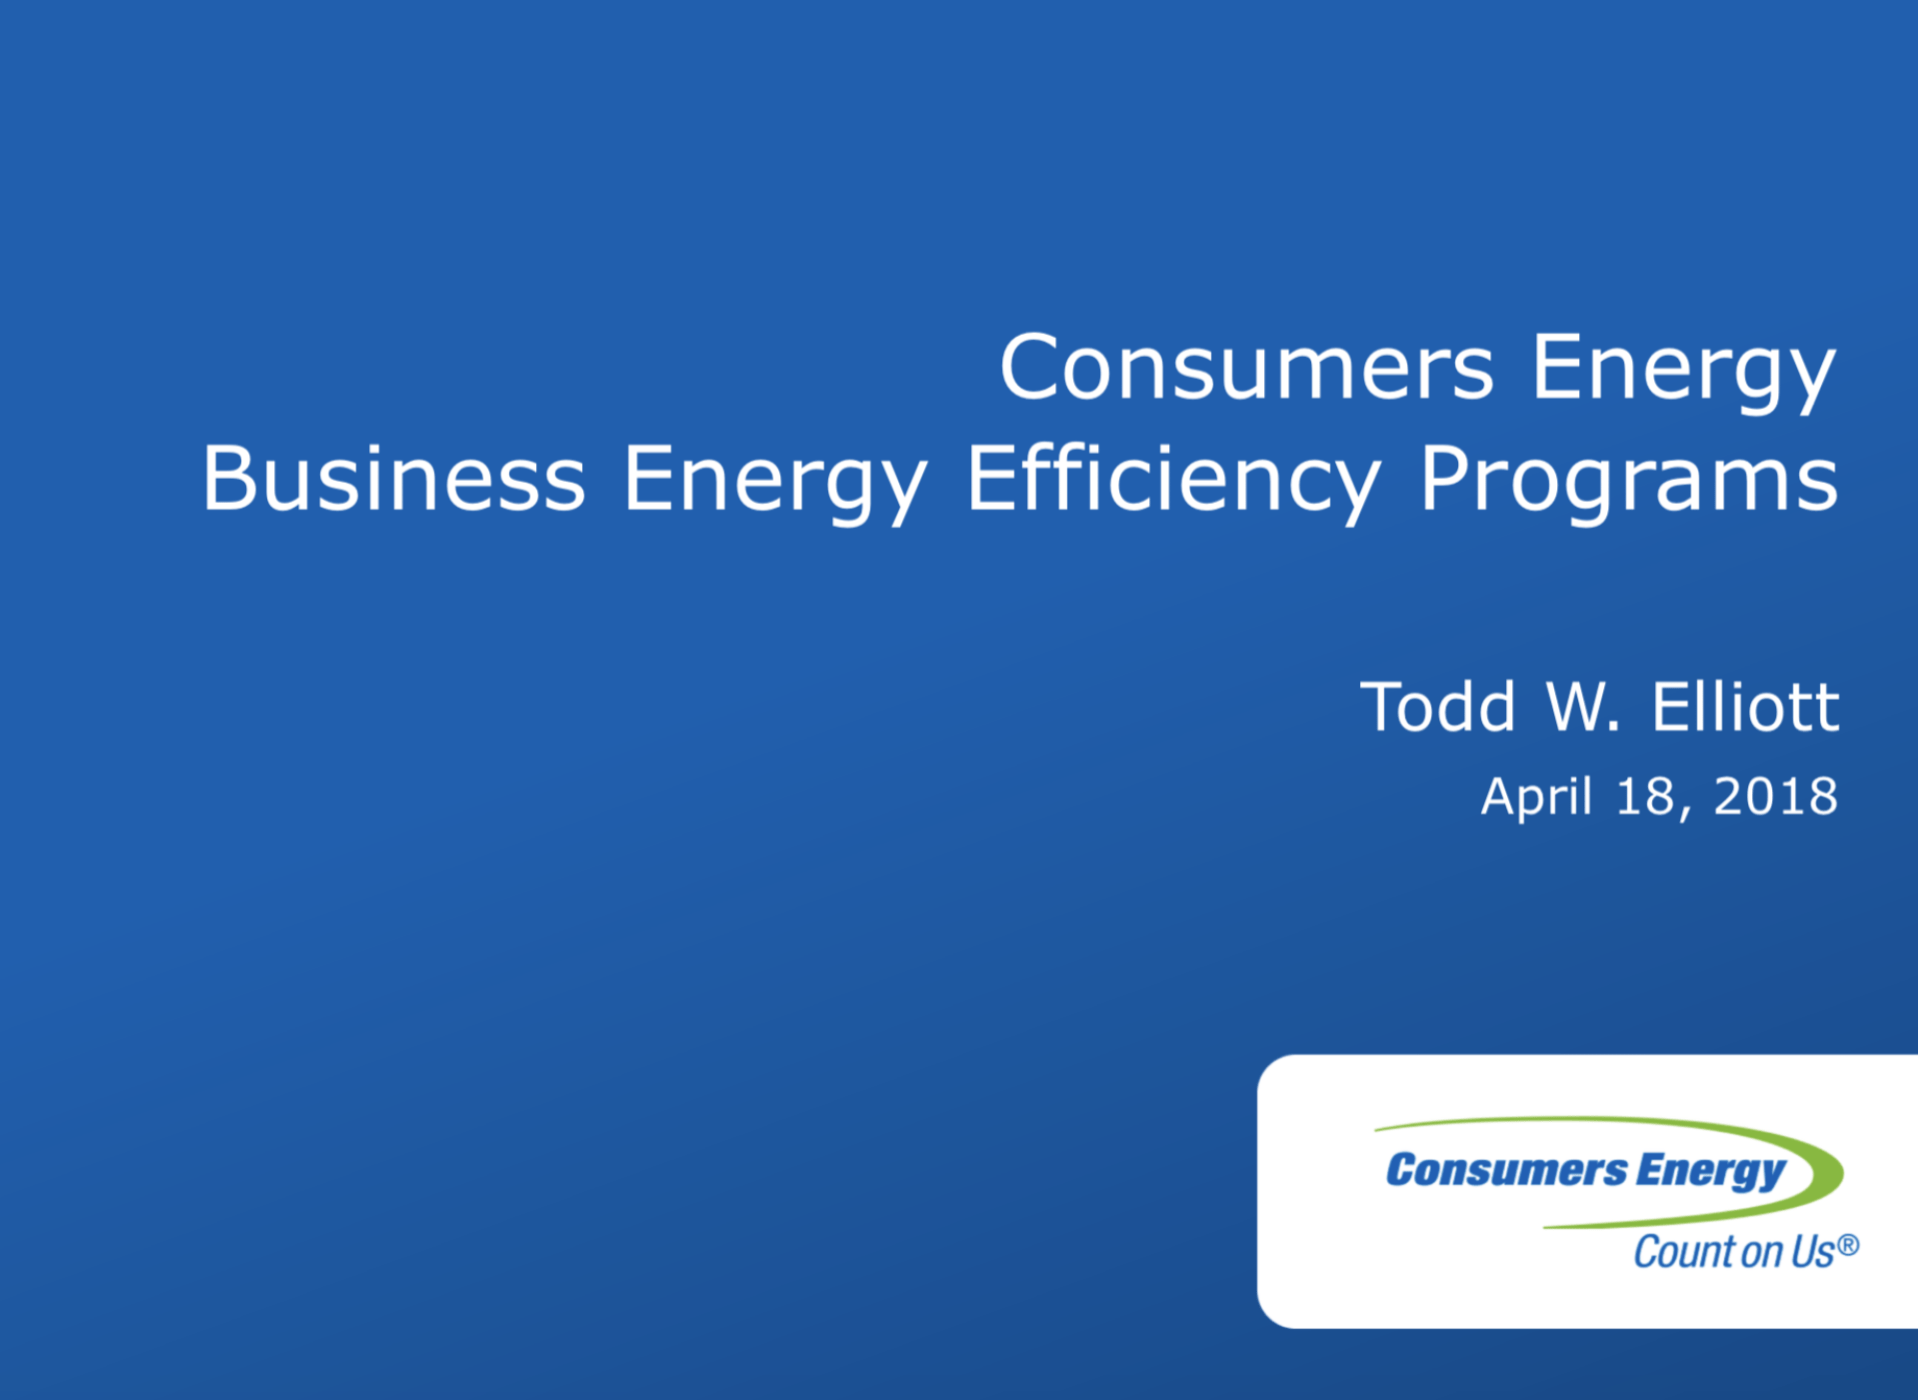 Consumers Energy: Business Energy Efficiency Programs